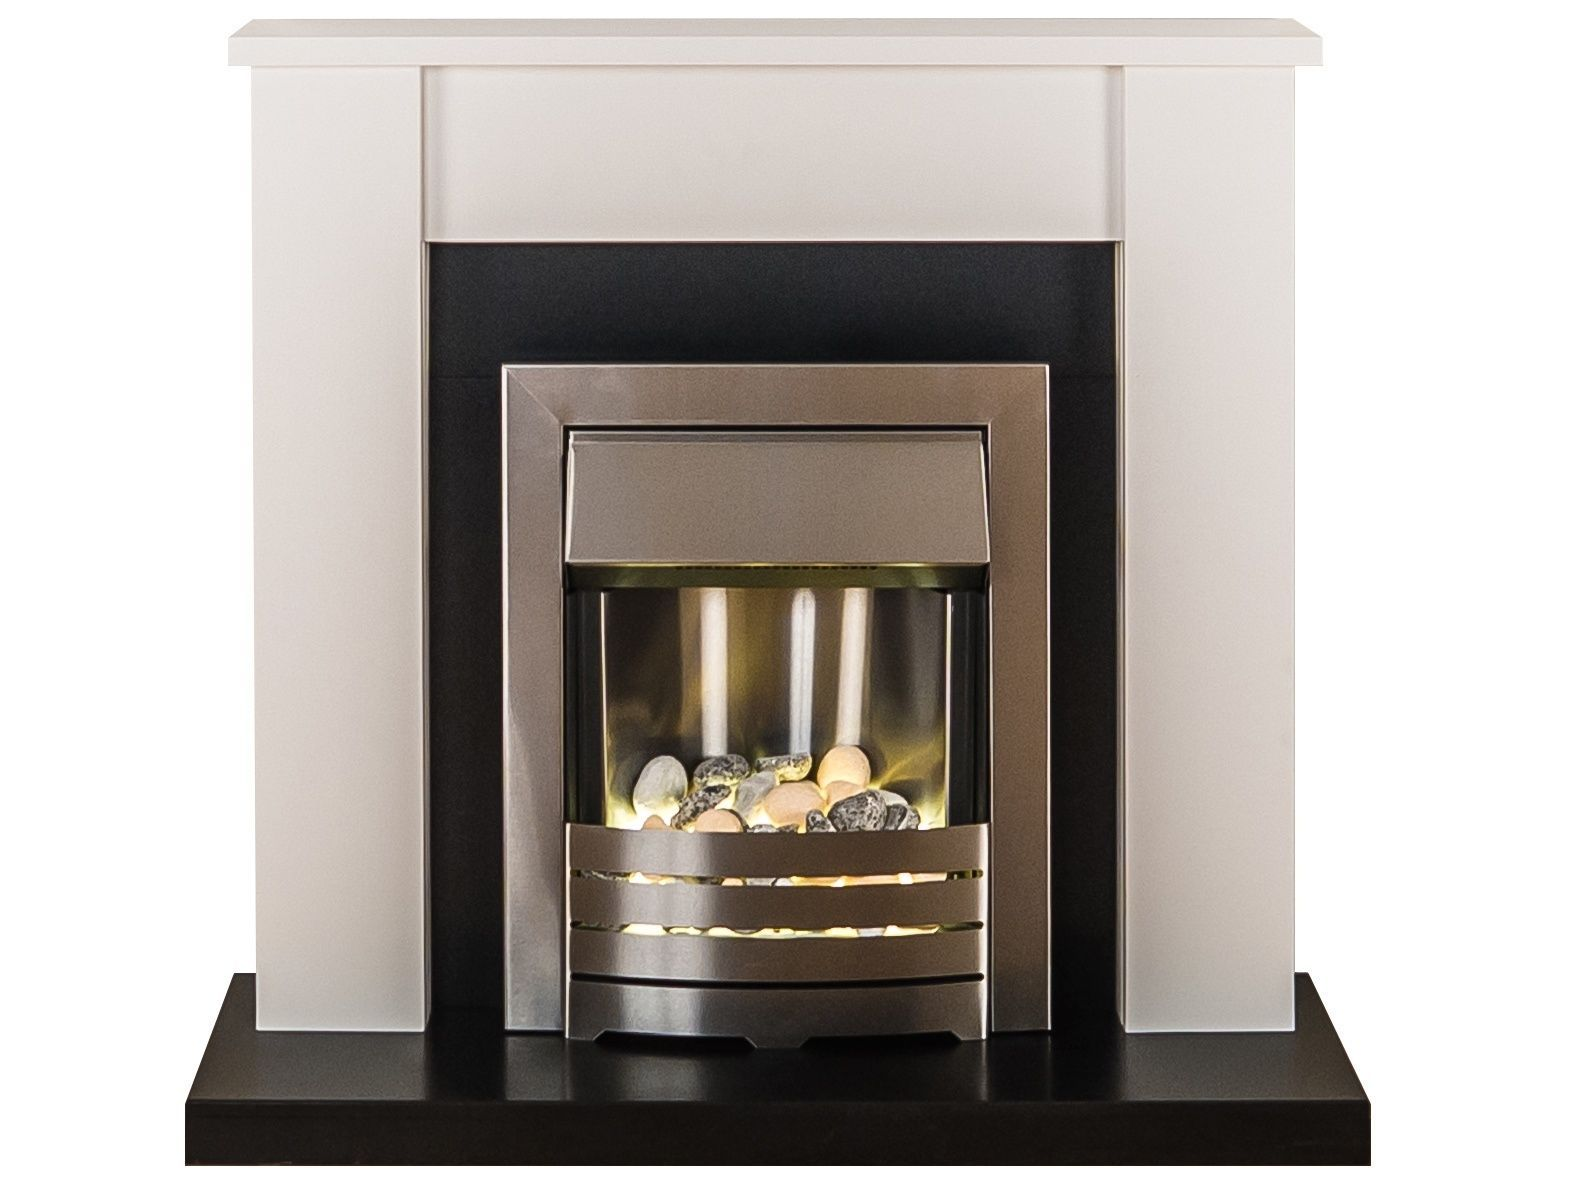 Adam fireplace suite in black and pure white with electric fire in